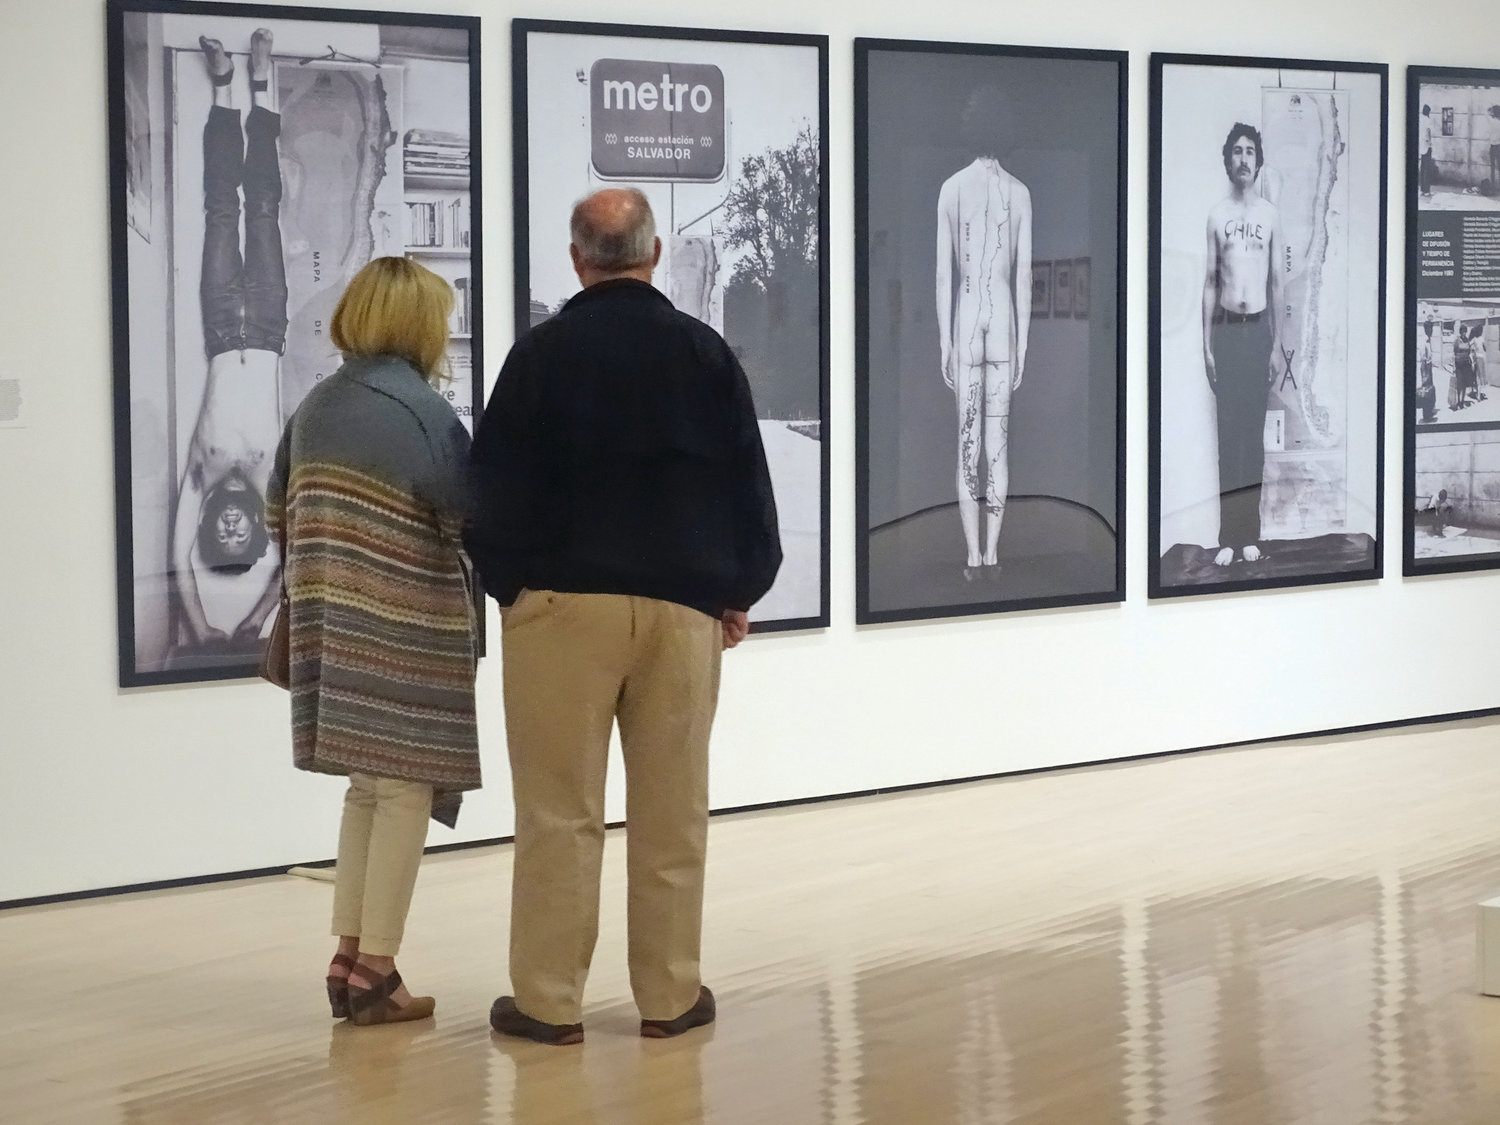 Visitors take in the Broad's current exhibit of dissident art created under the heel of Latin American dictatorships.